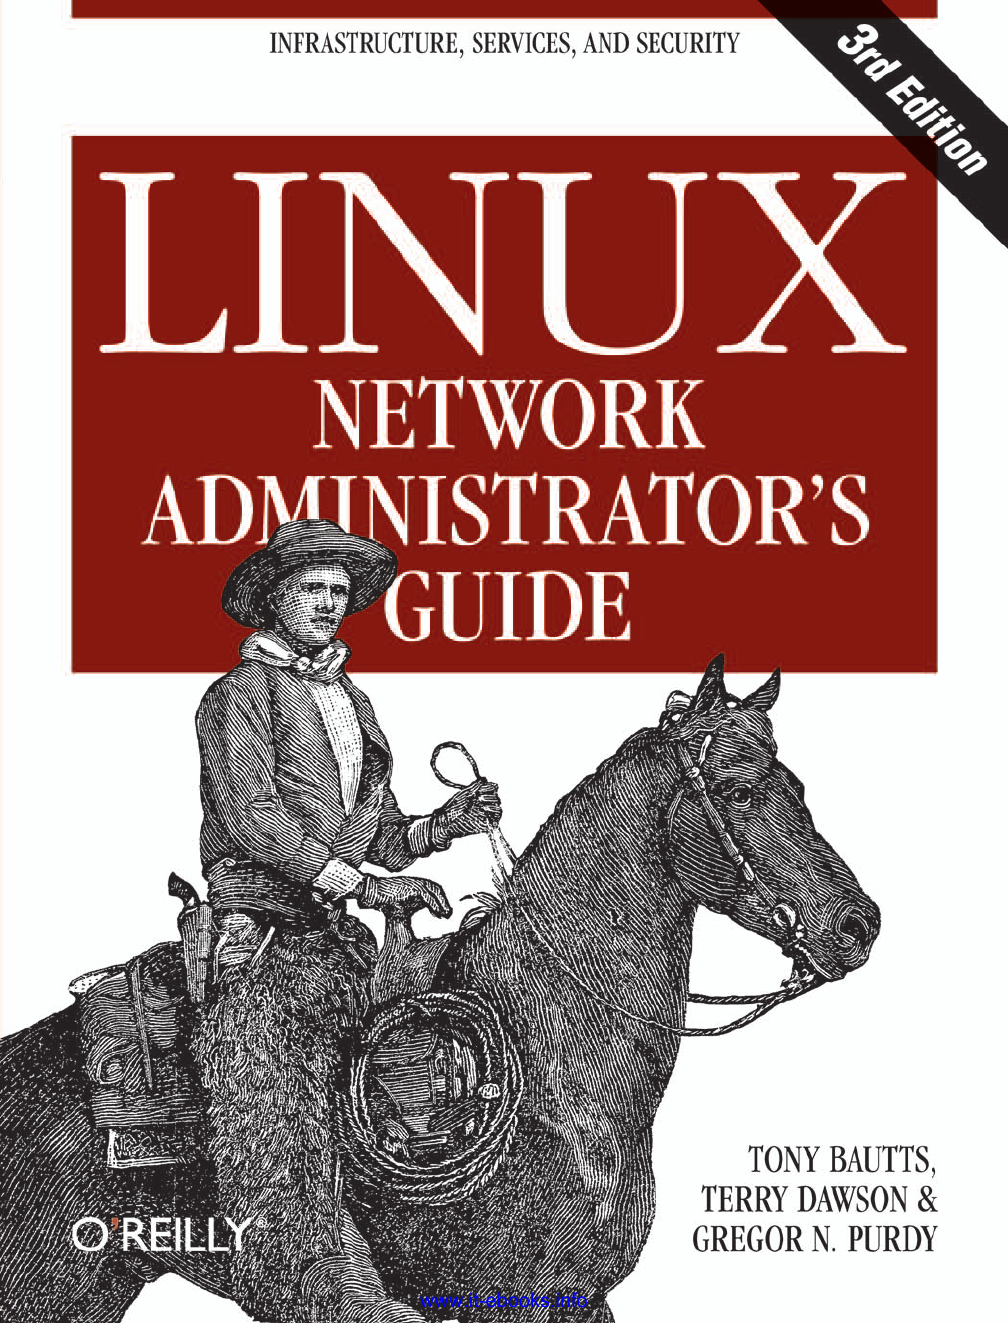 http://www.mediafire.com/view/ozdj6ue85z2s8l4/Linux_Network_Administrator's_Guide,_3rd_Edition.pdf